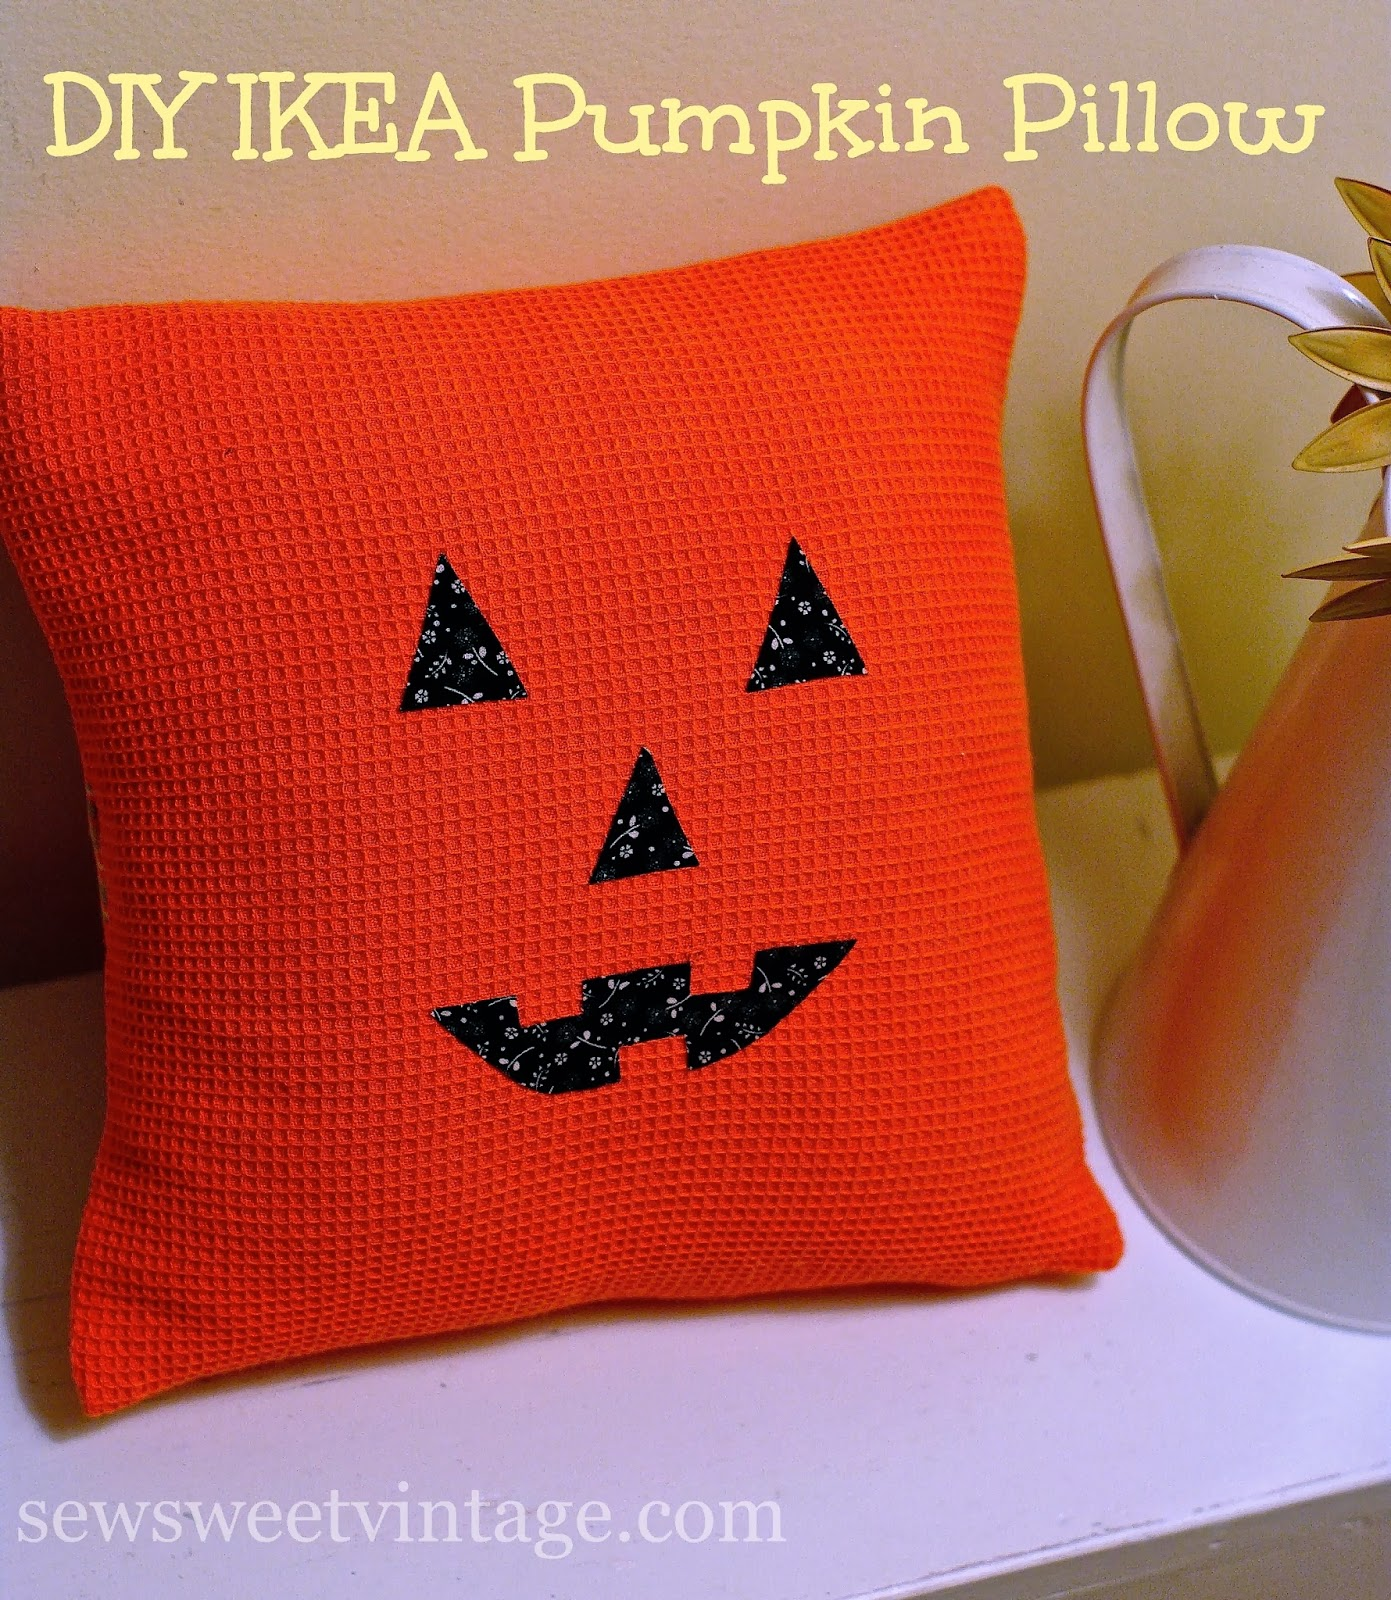 Sew Sweet Vintage: pumpkin pillowcase treat bag